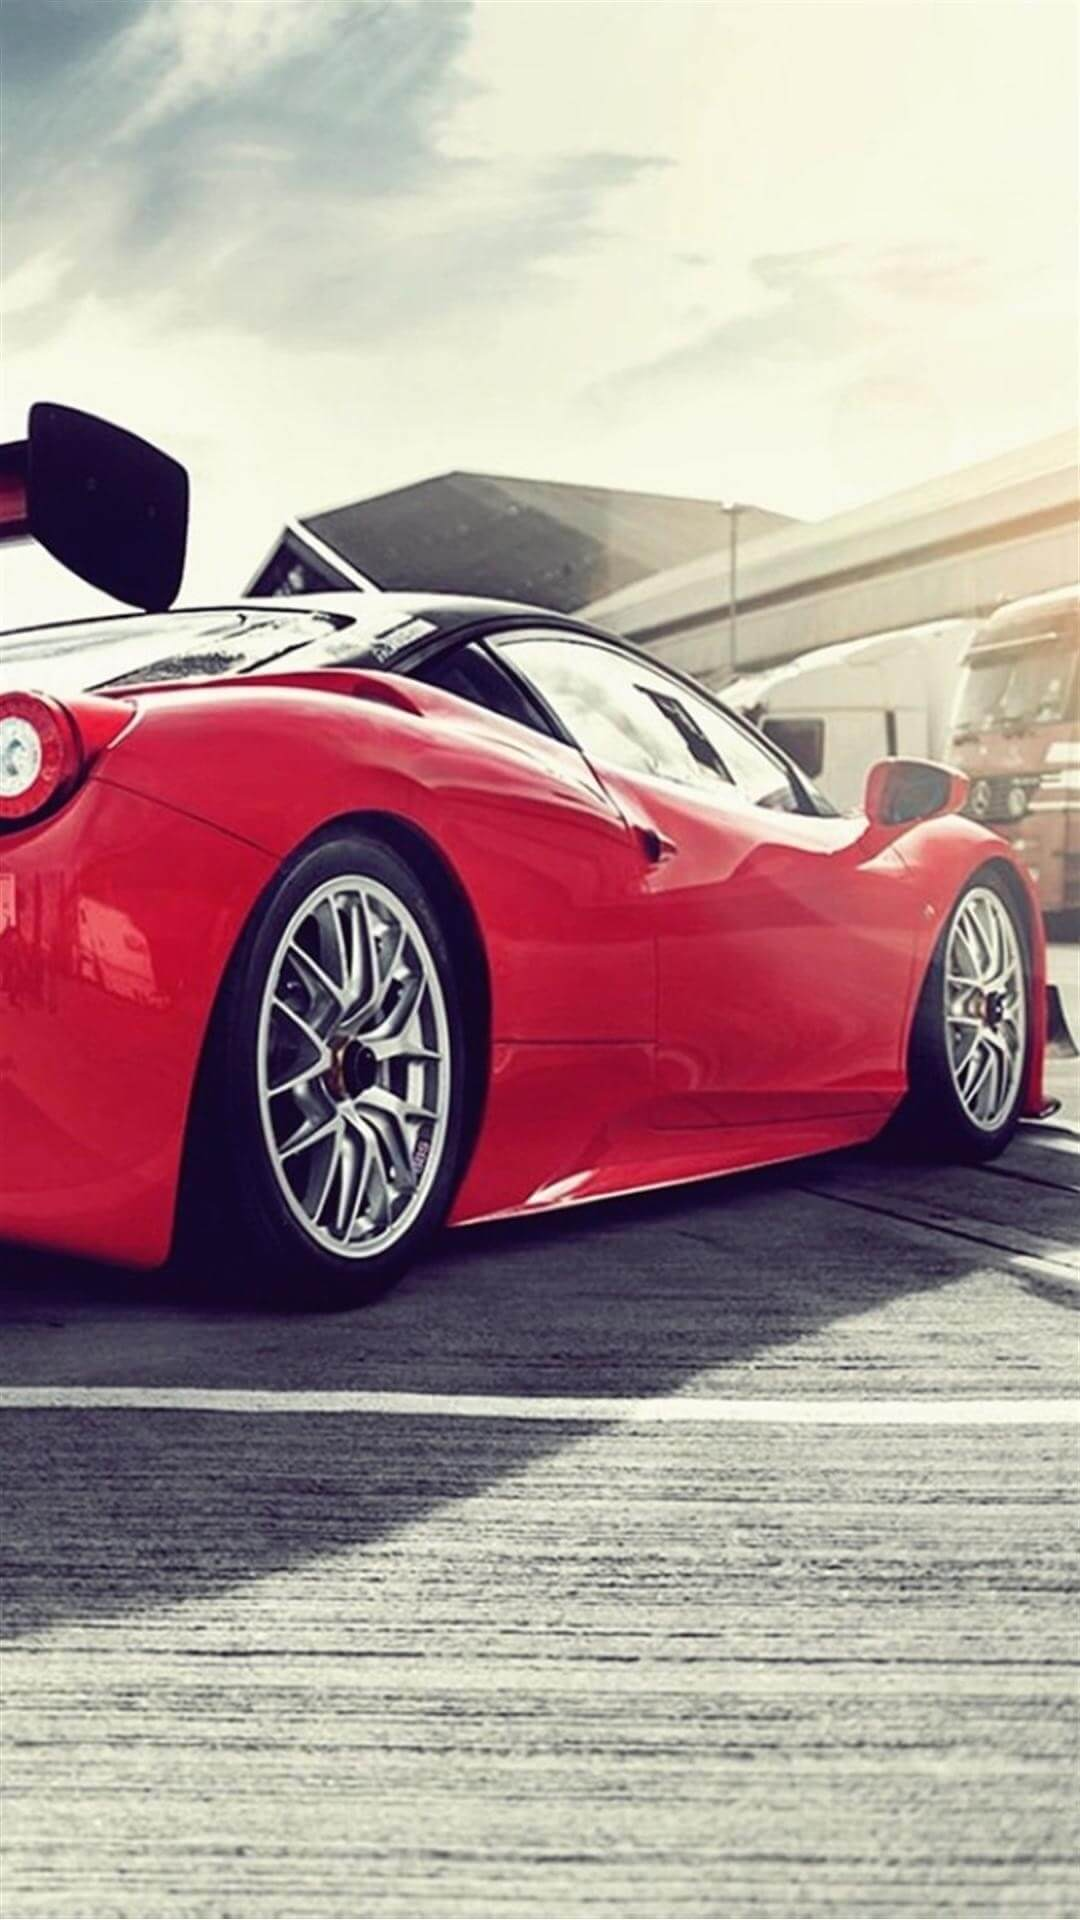 ferrari 458 italia gt3 iphone 7 plus hd wallpaper